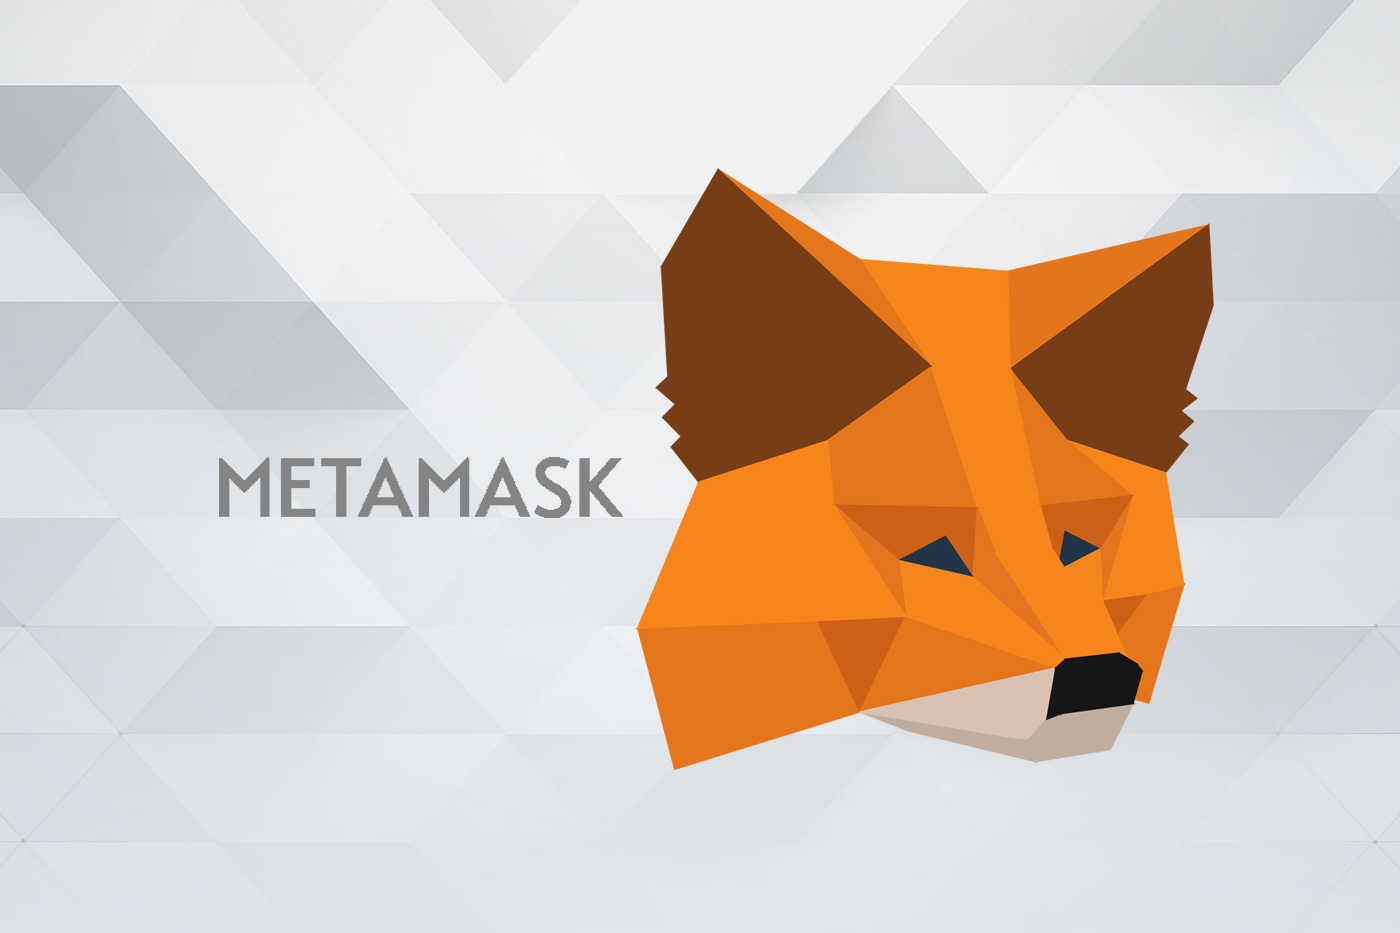 AirdropAlert's guide on Metamask for eth and ERC20 tokens